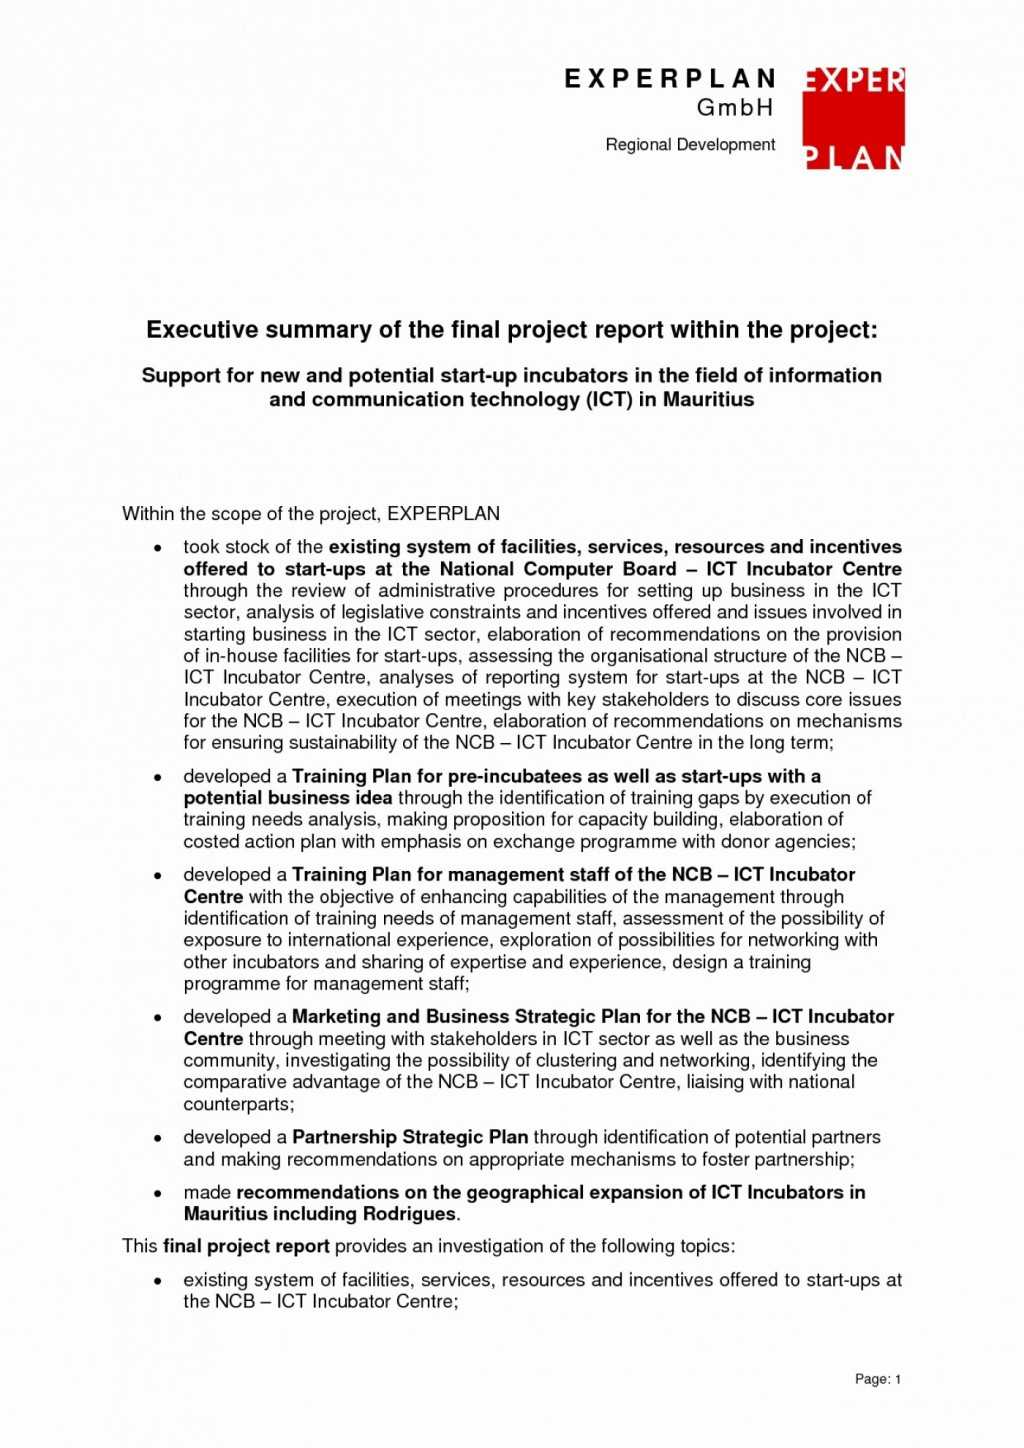 008 Project Management Executive Summary Report Template Pertaining To Research Project Report Template